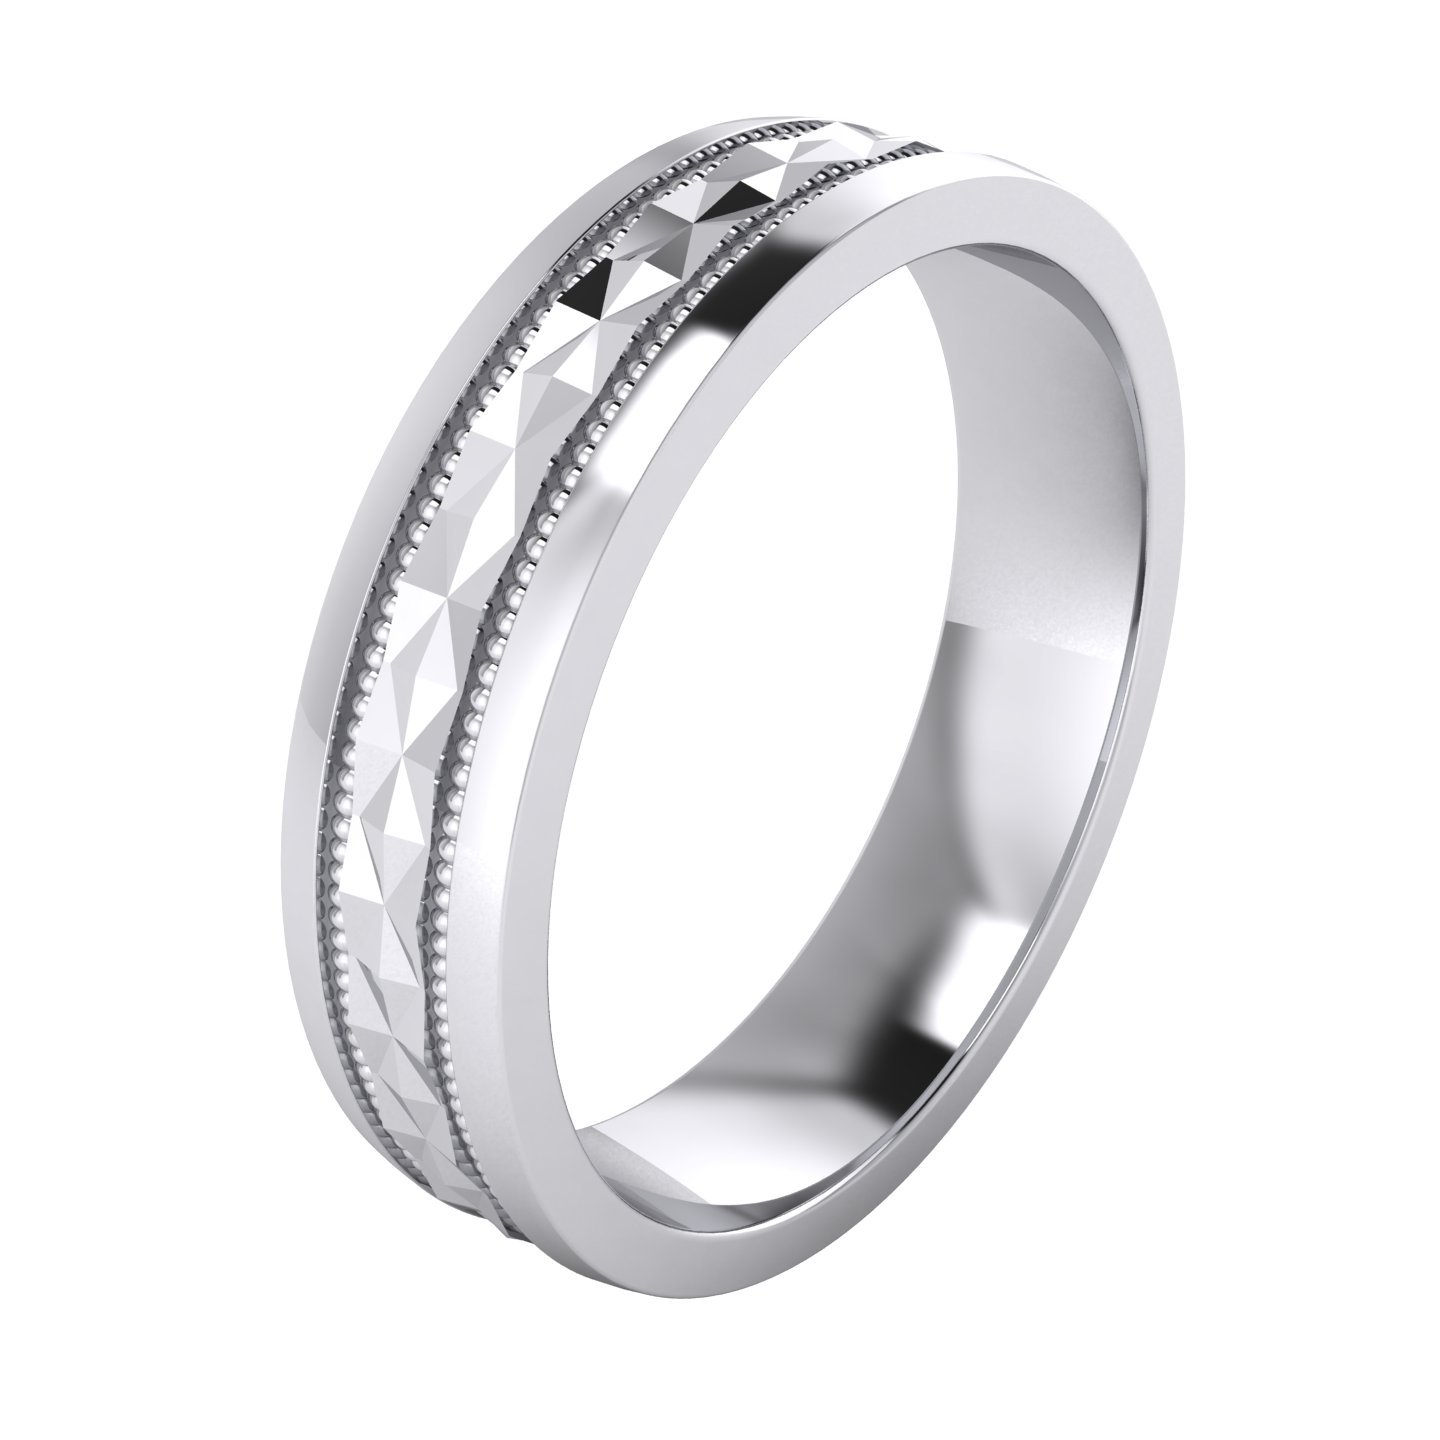 (5 Styles) Heavy Solid Sterling Silver Wedding Band Diamond Cut Patterned Ring Comfort Fit Unisex THELANDA HC-C-925